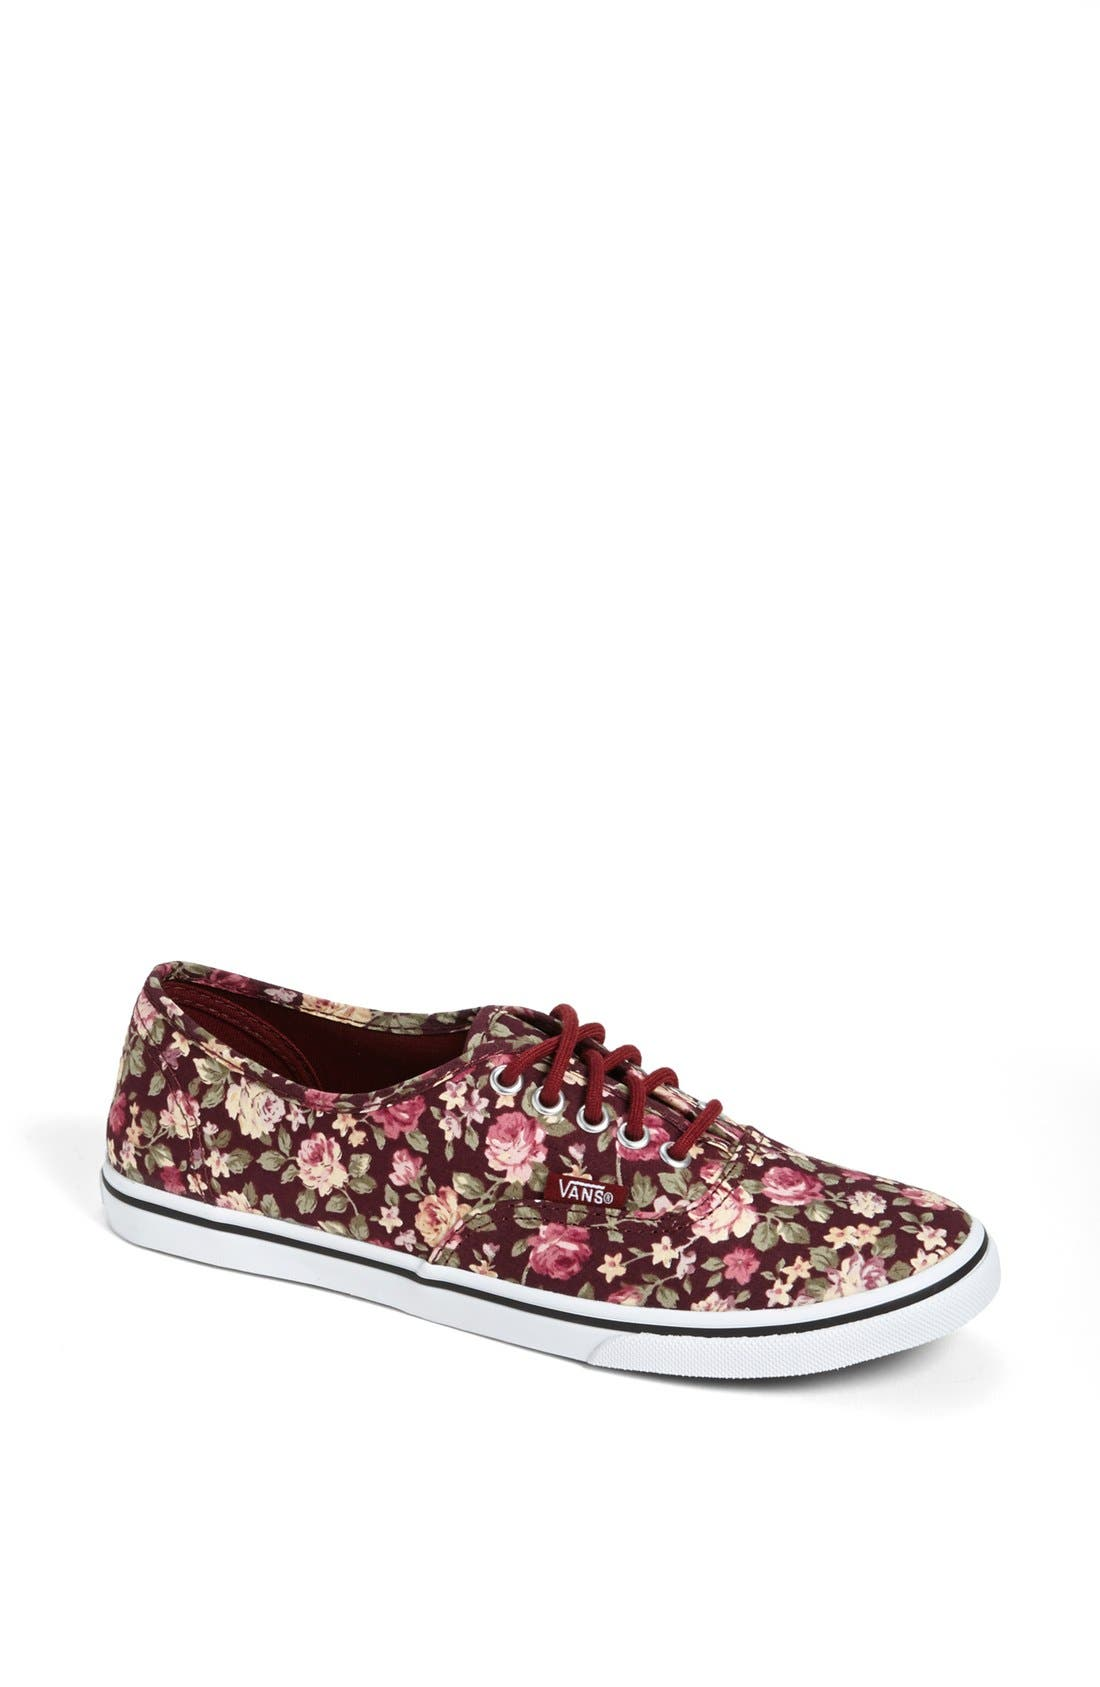 Alternate Image 1 Selected - Vans 'Authentic Lo Pro - Floral' Sneaker (Women)